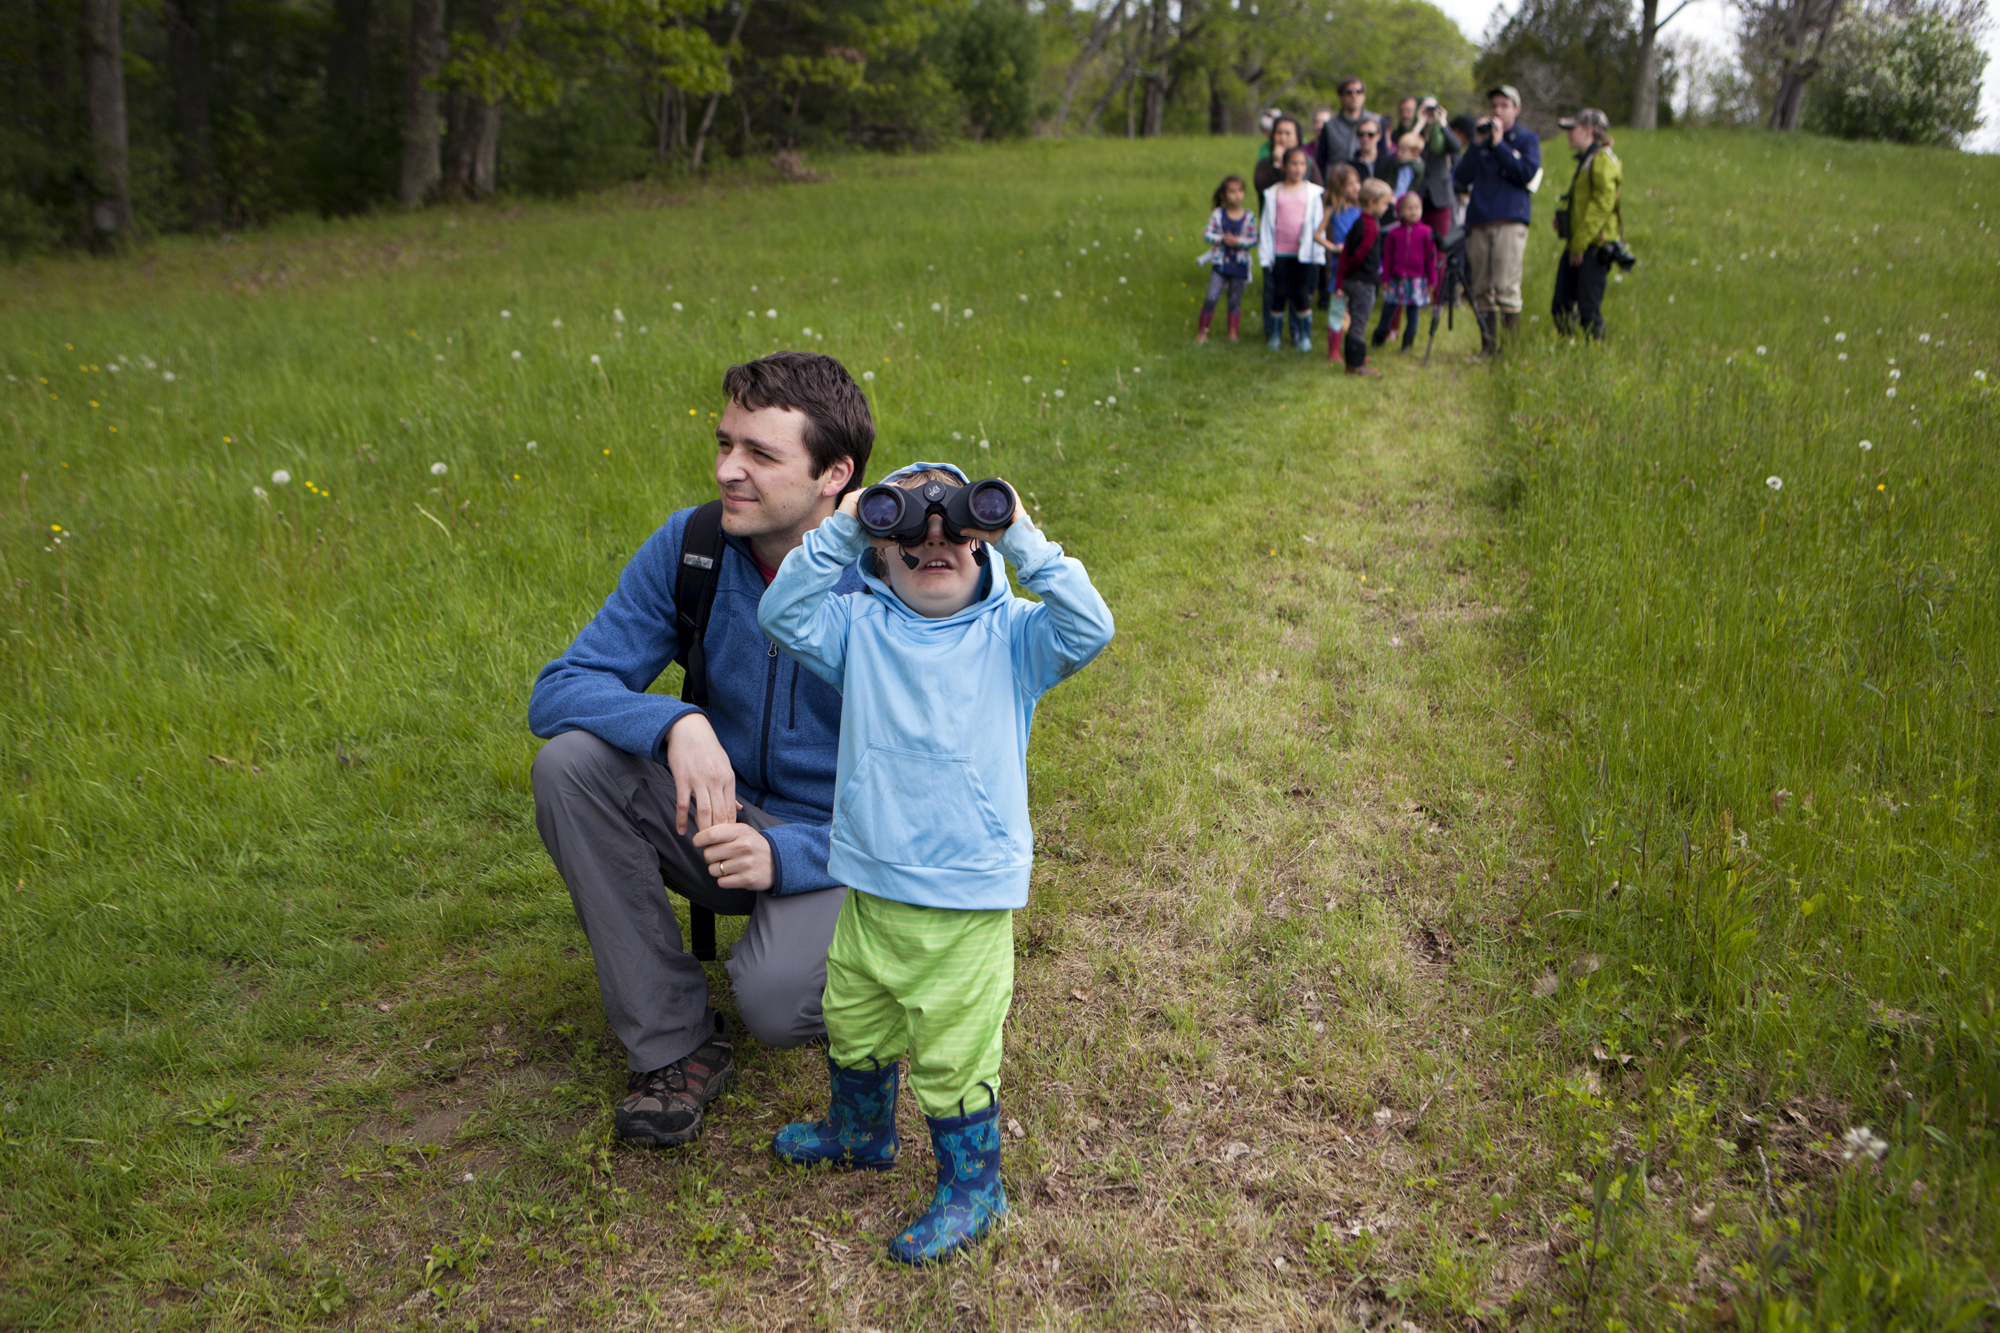 Kids look for birds during the LL Bean Birding Festival's children's bird walk at Pettengill Farm in Freeport, Maine on May 27.